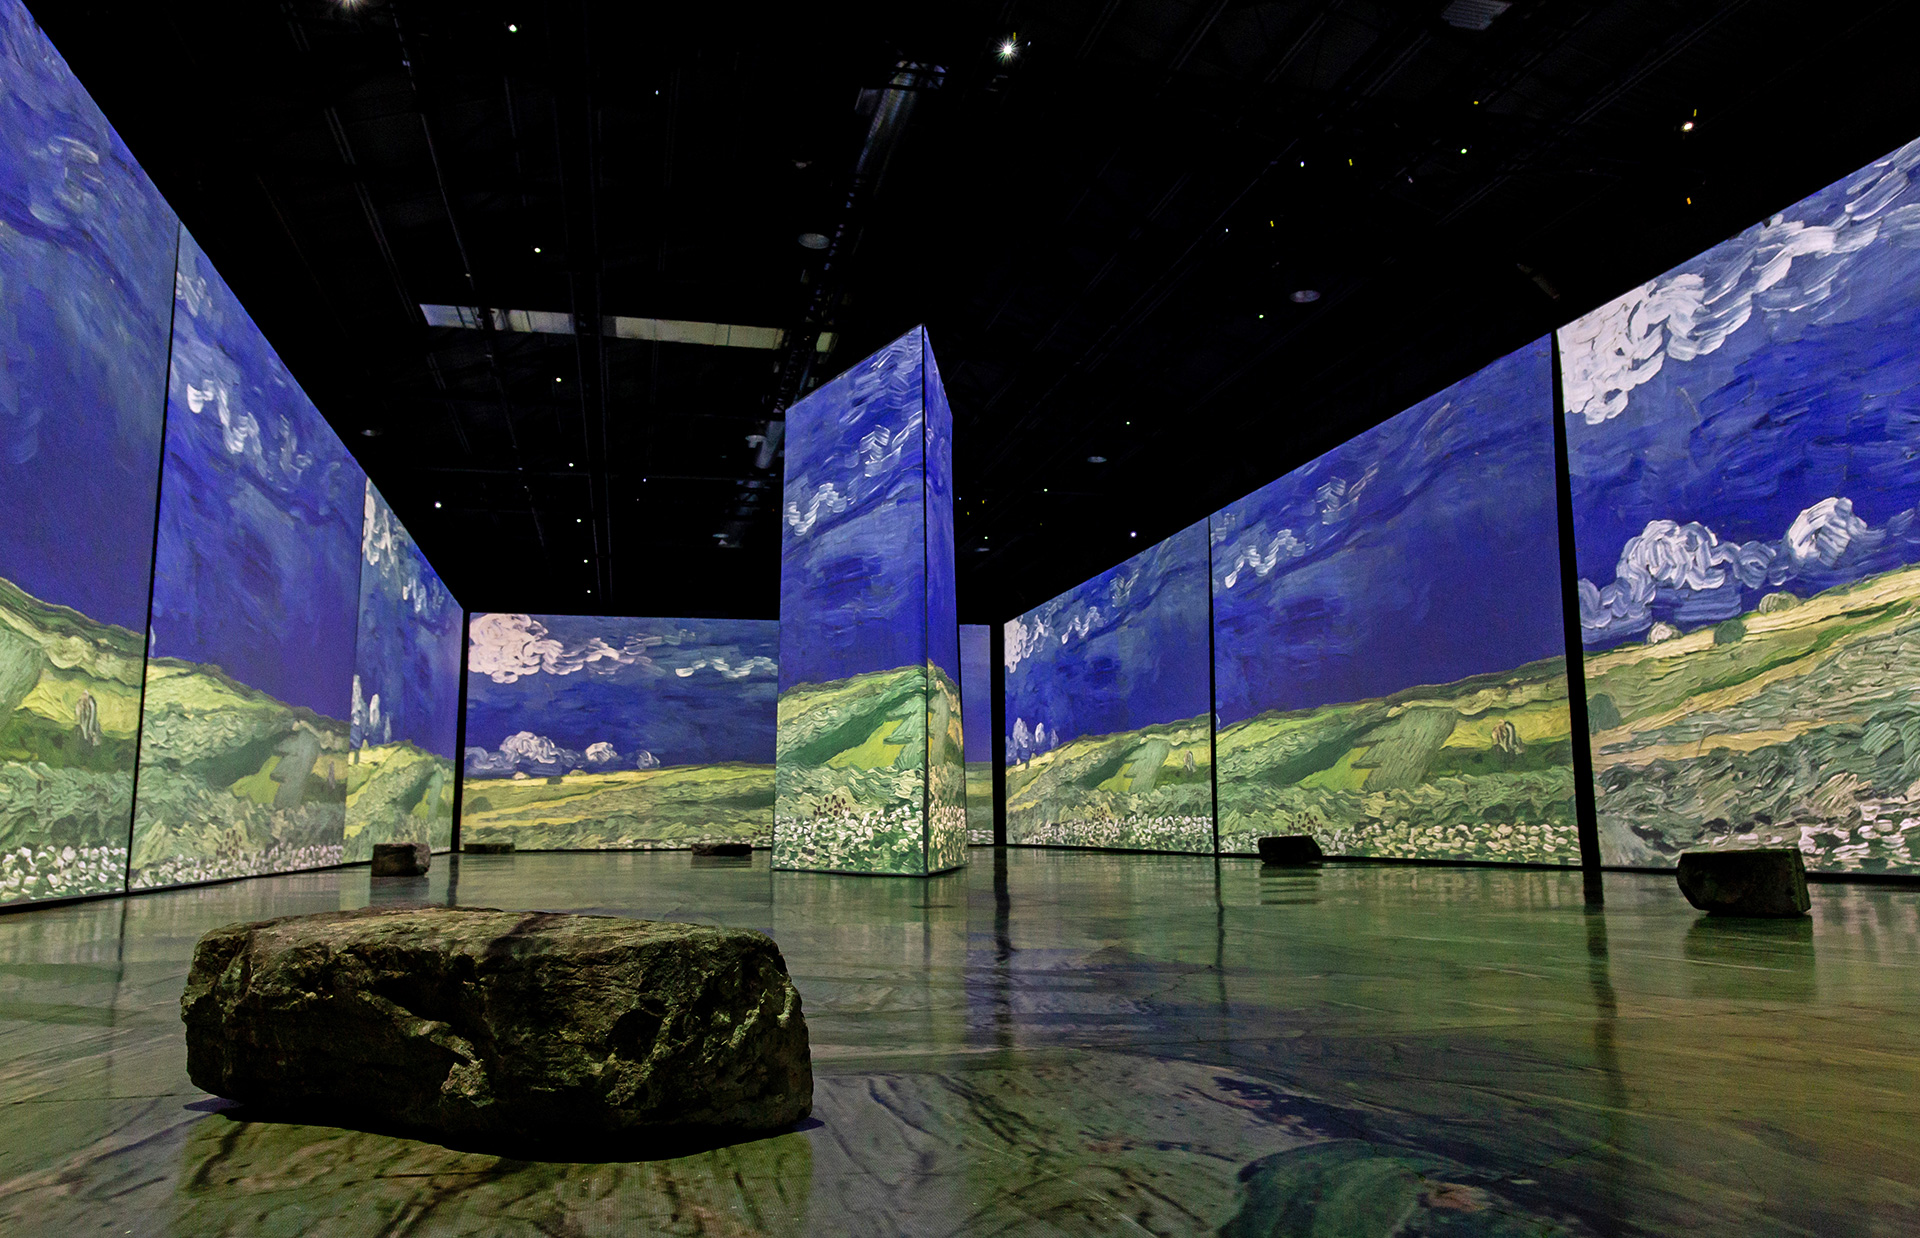 The exhibition uses advanced techniques of multi-projection and immersive audio that enable the viewer to dive deep into the heart of Van Gogh's works | Imagine Van Gogh | STIRworld